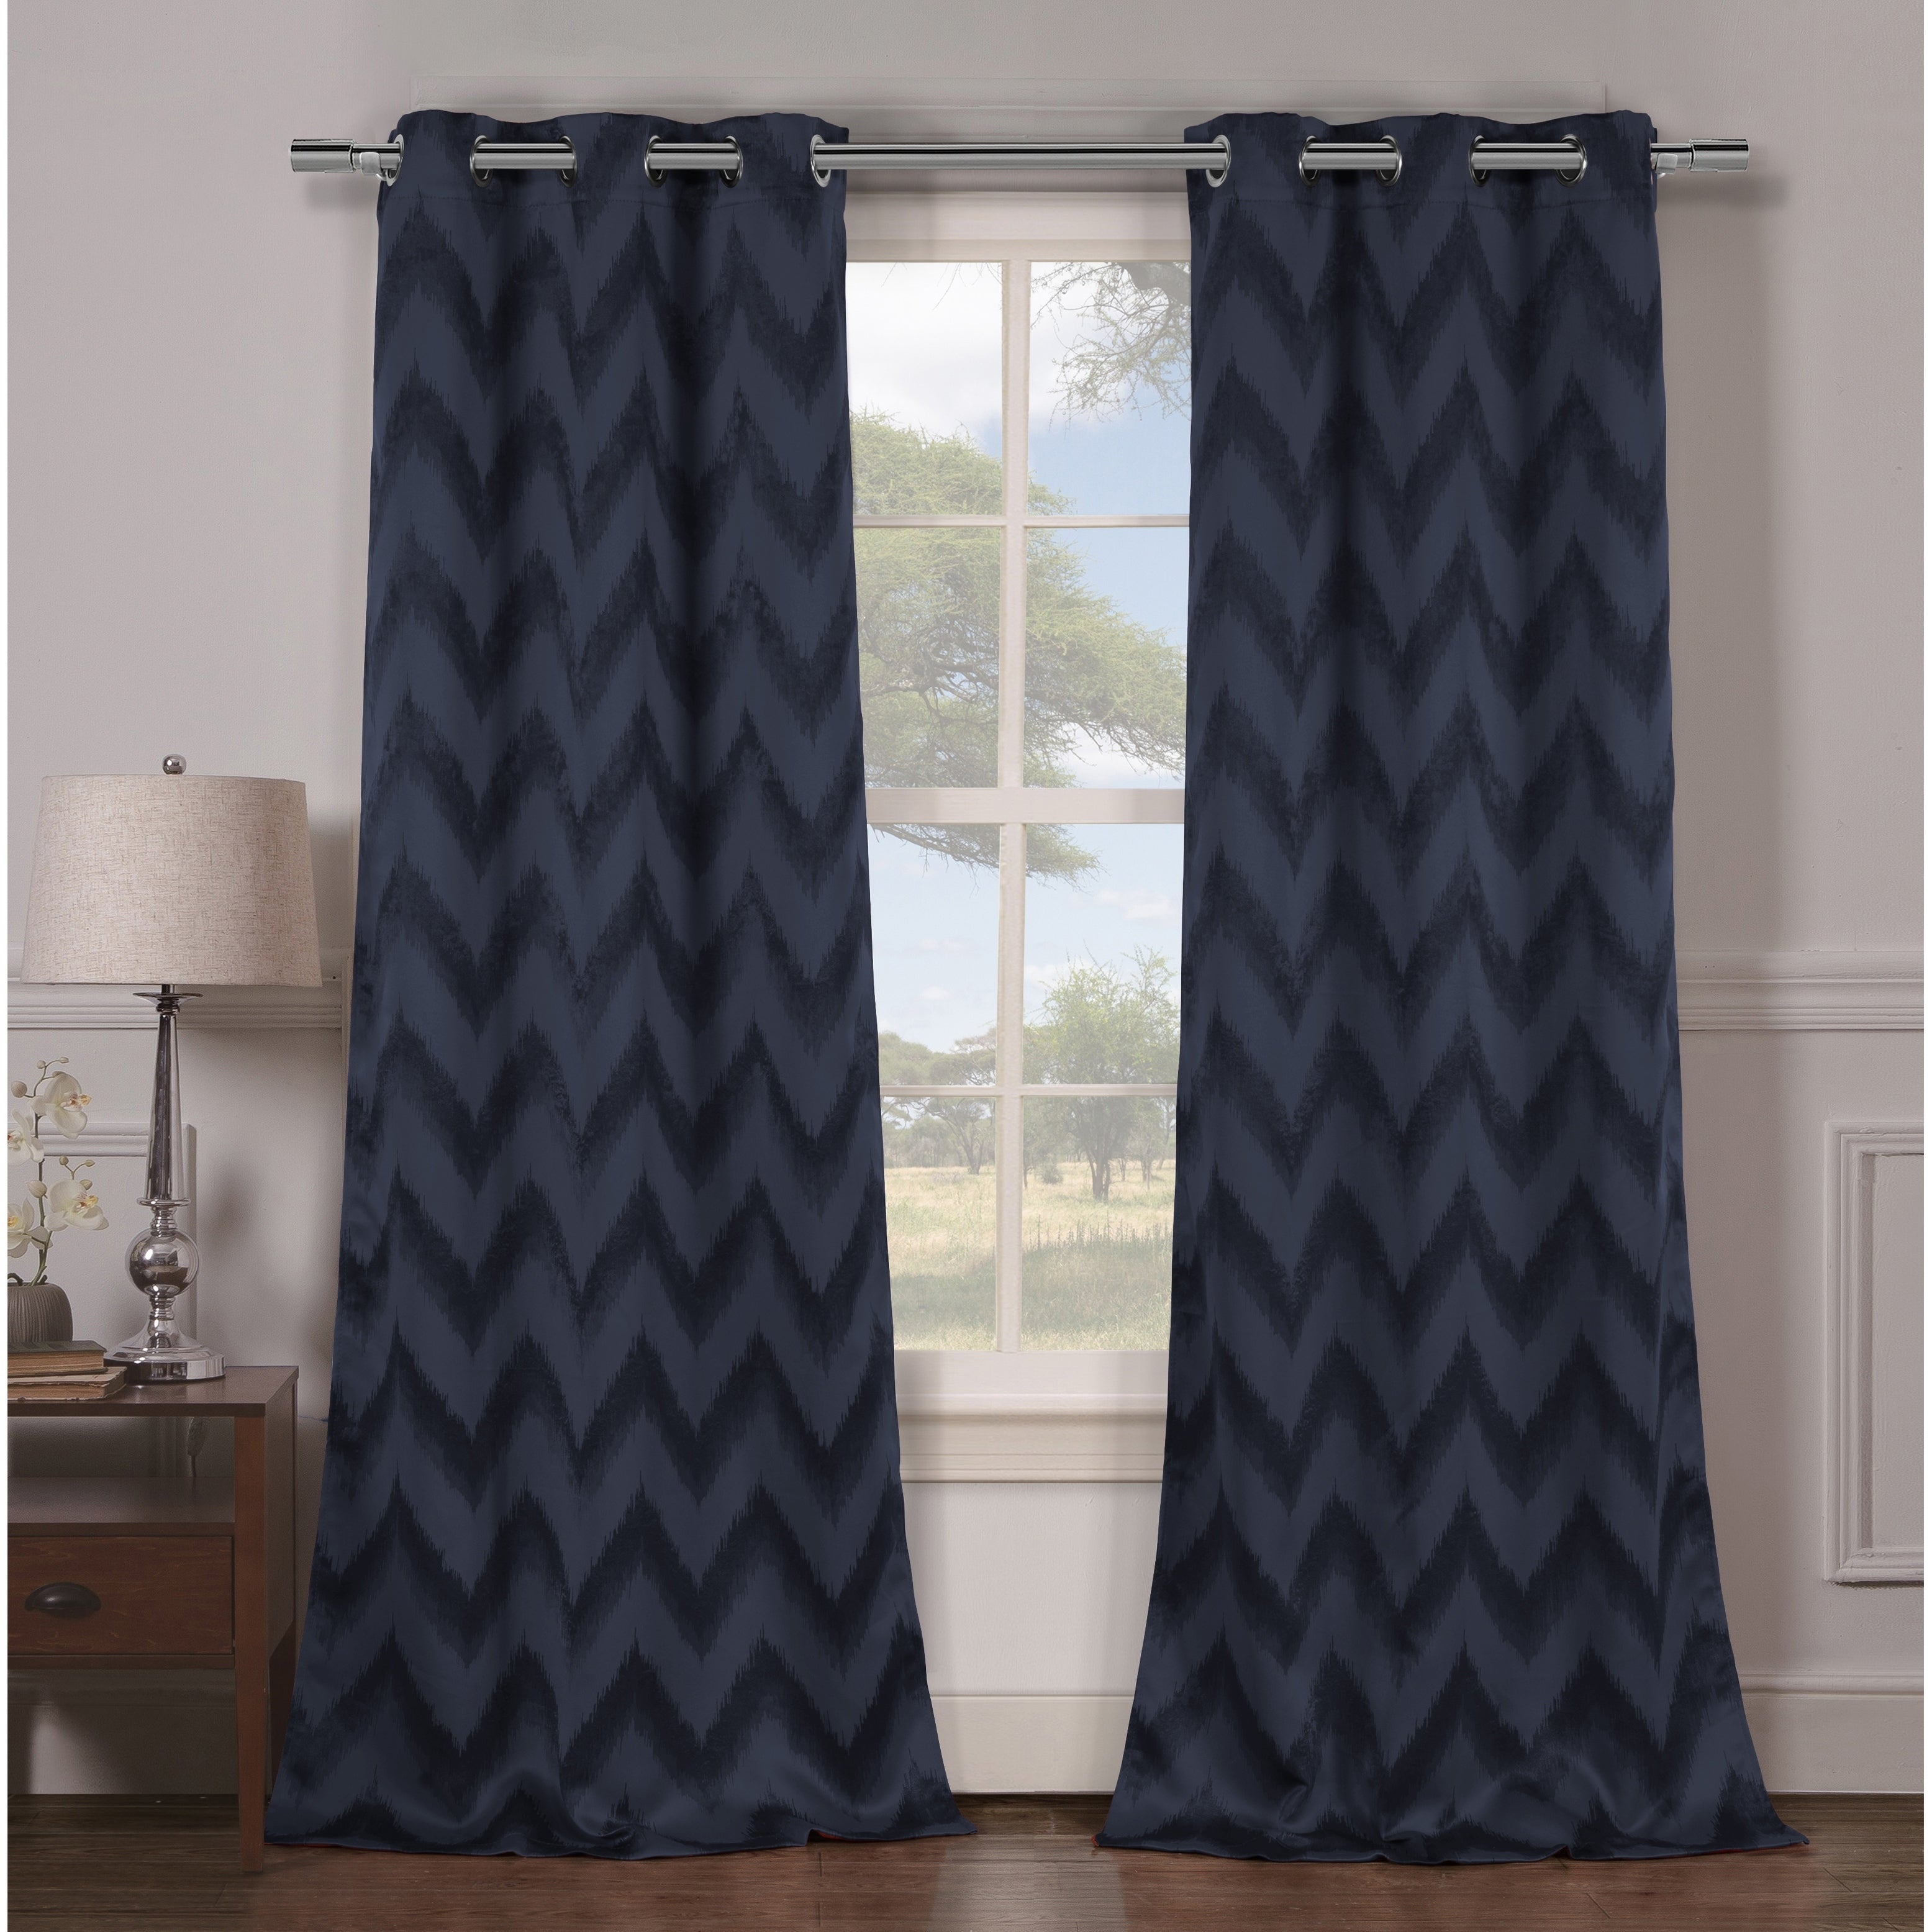 Detalles Acerca De Duck River Lysanna Grommet Top Thermal Insulated Blackout Curtain Panel Pair – Throughout Insulated Grommet Blackout Curtain Panel Pairs (View 9 of 20)